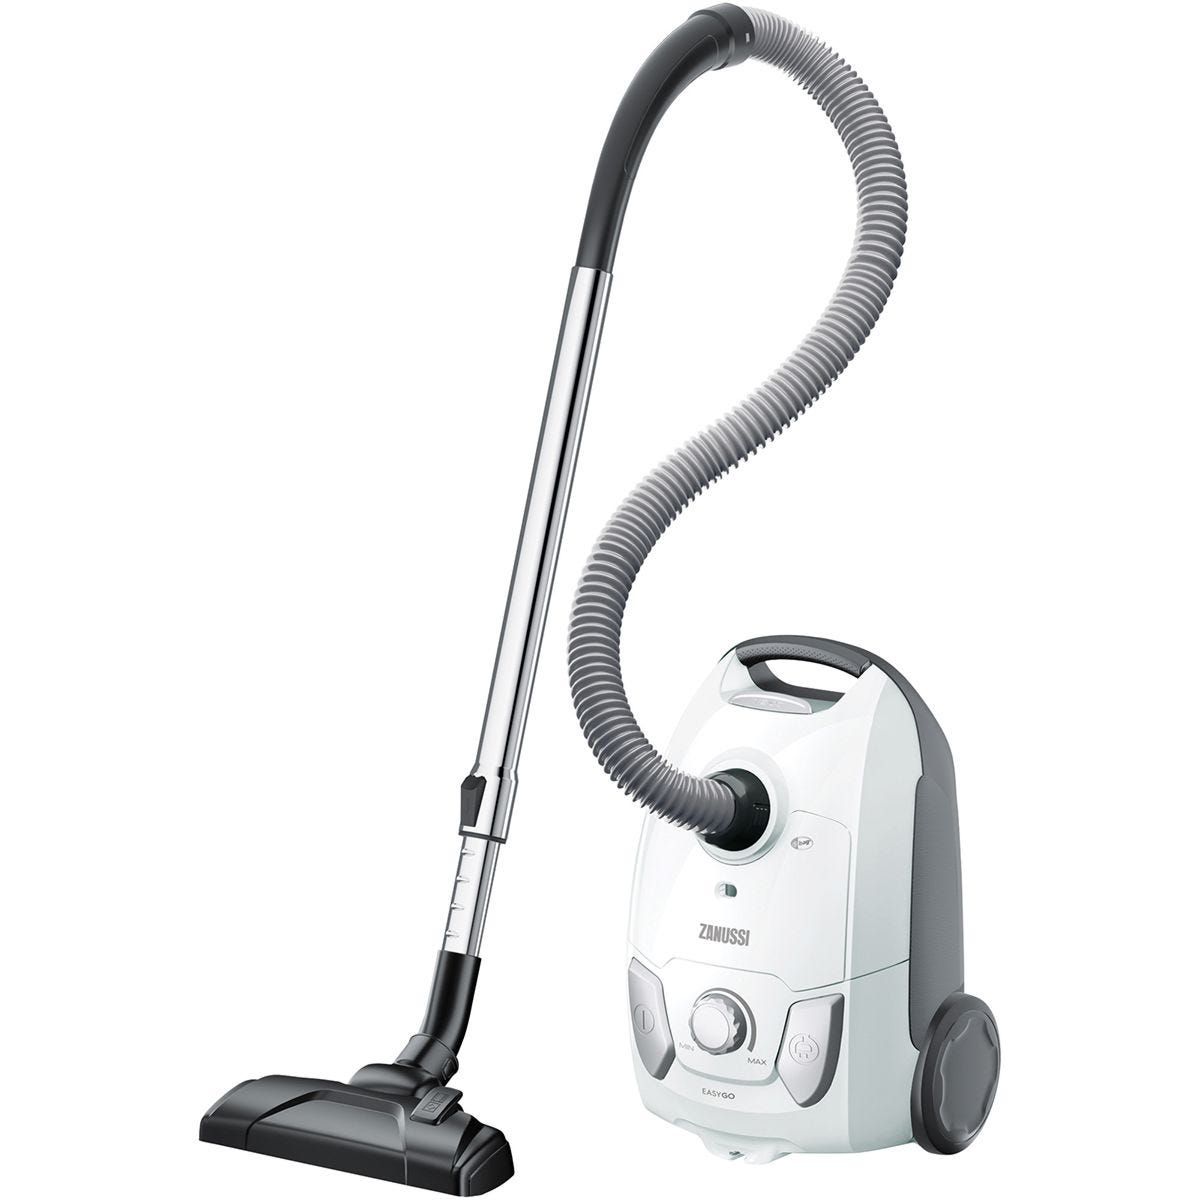 Zanussi 750W Easy Go Vacuum Cleaner - White/Silver